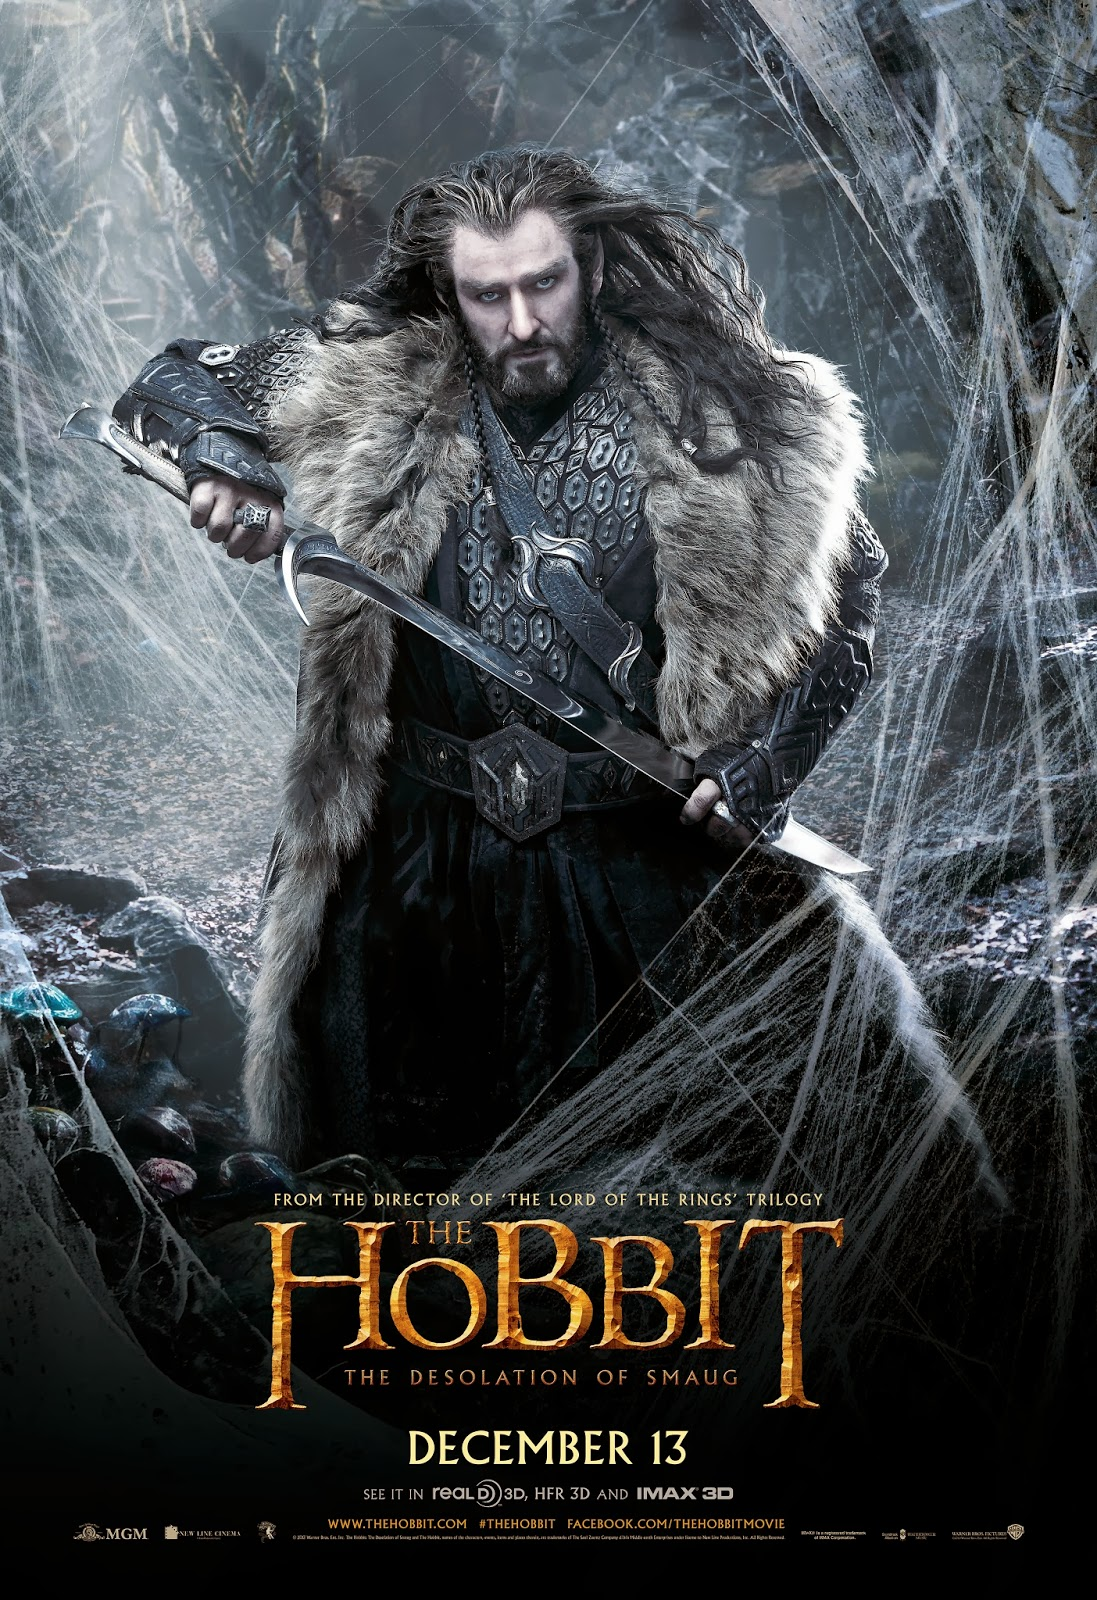 The Hobbit: The Desolation of Smaug International Poster - Thorin Oakenshield